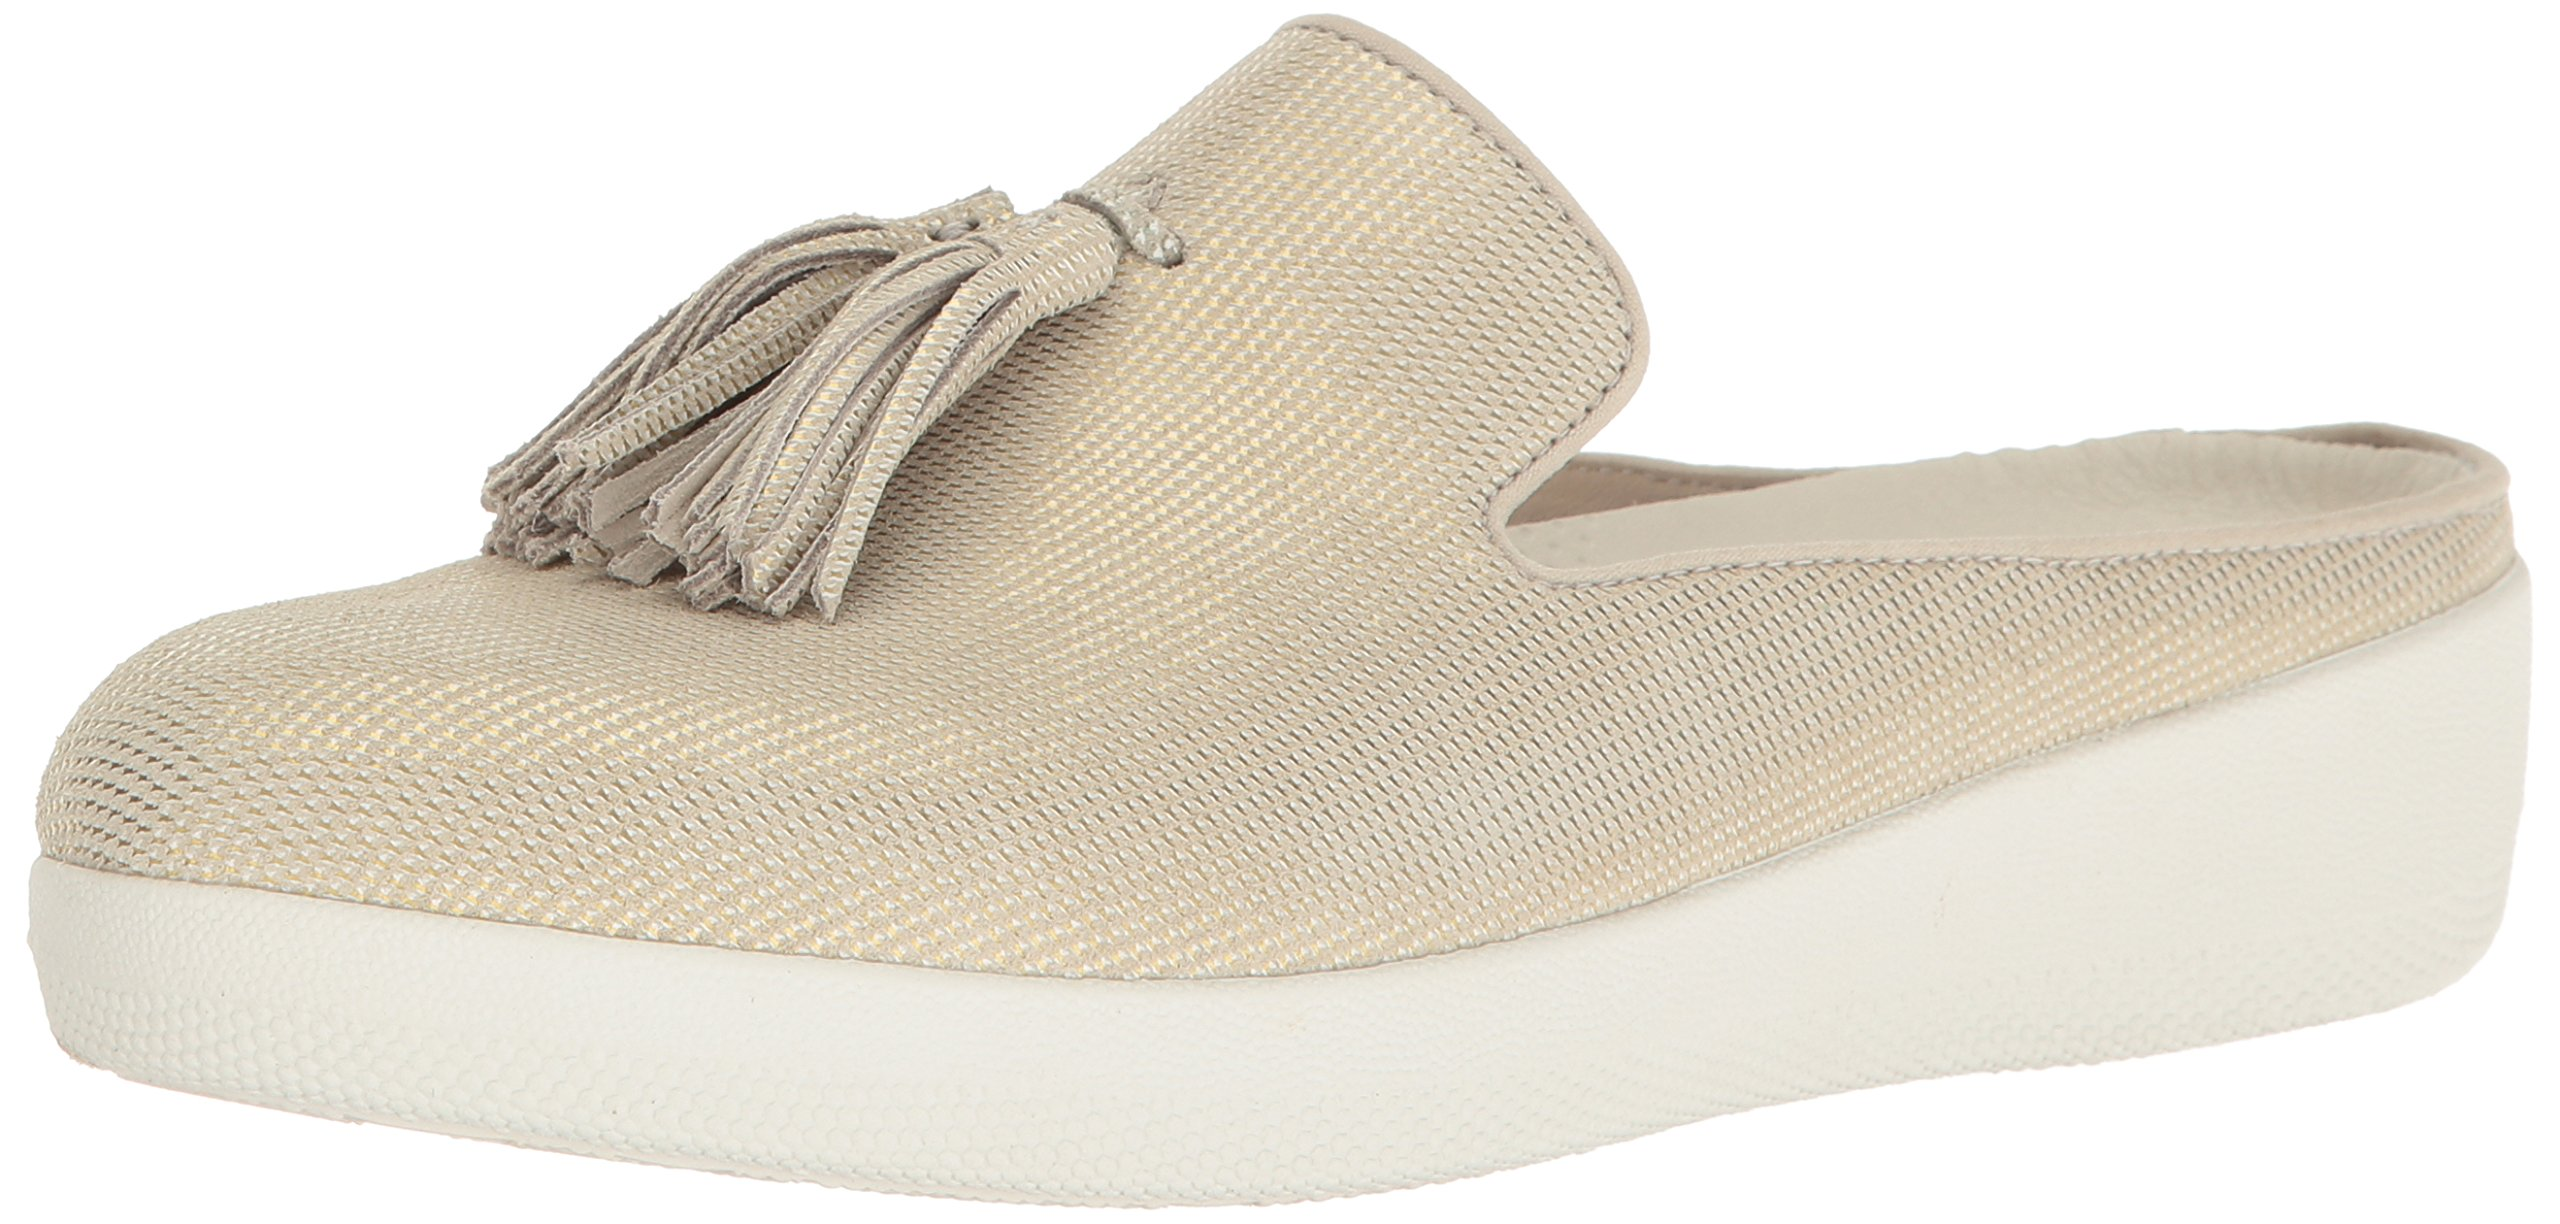 FitFlop Womens Houndstooth Print Superskate Slip-On Loafer, Cream, 8 M US